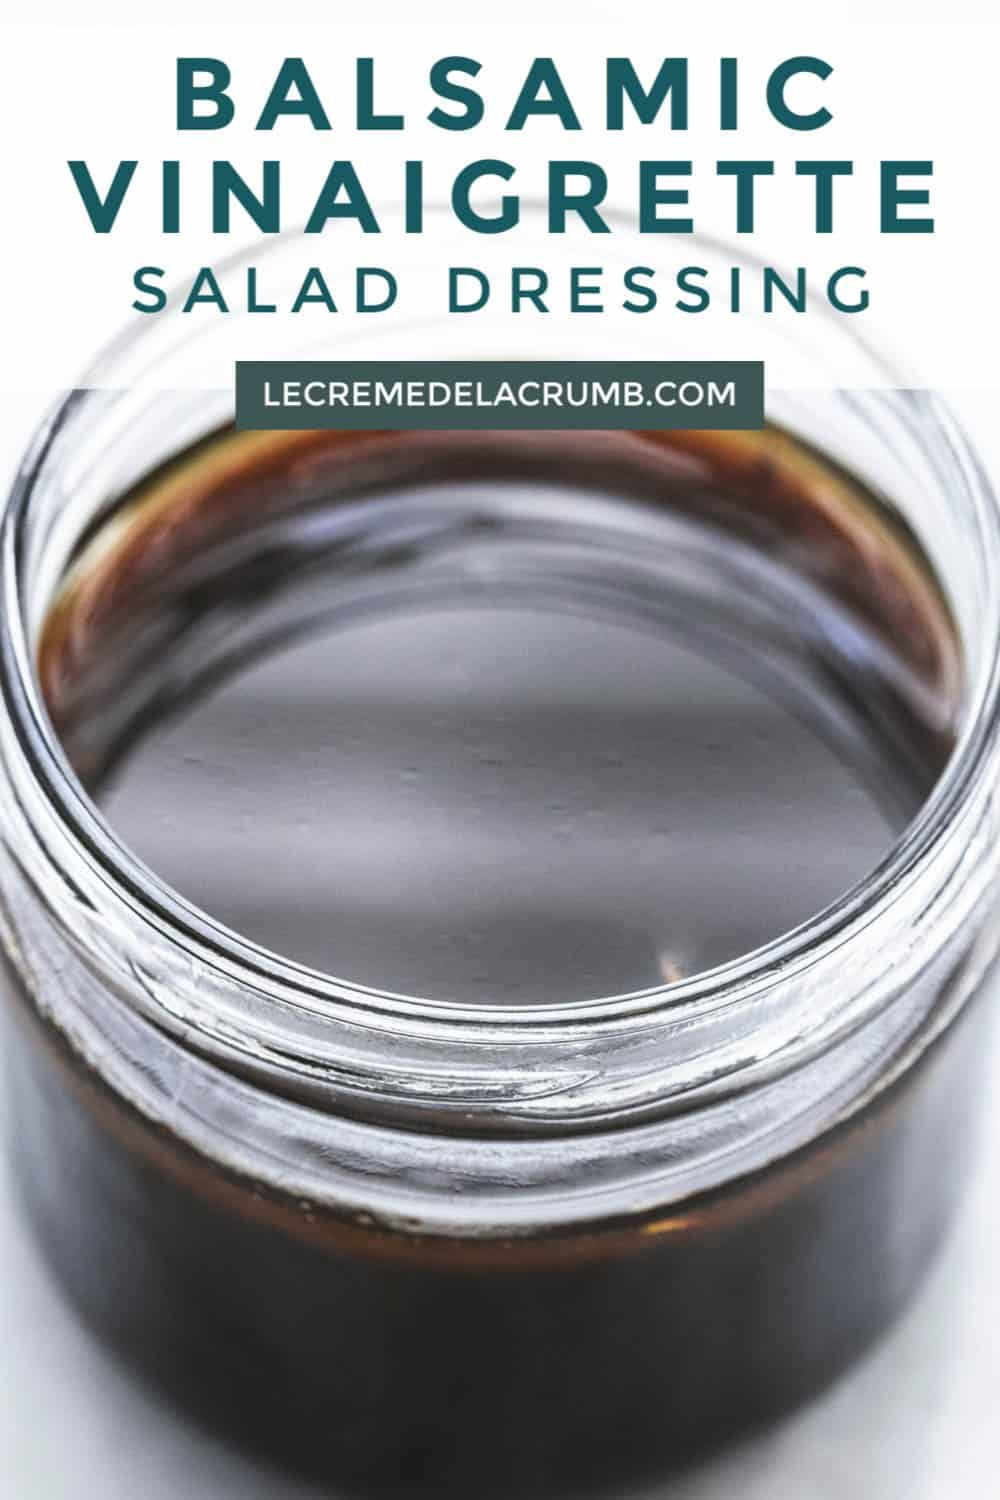 Balsamic Vinaigrette Salad Dressing Recipe